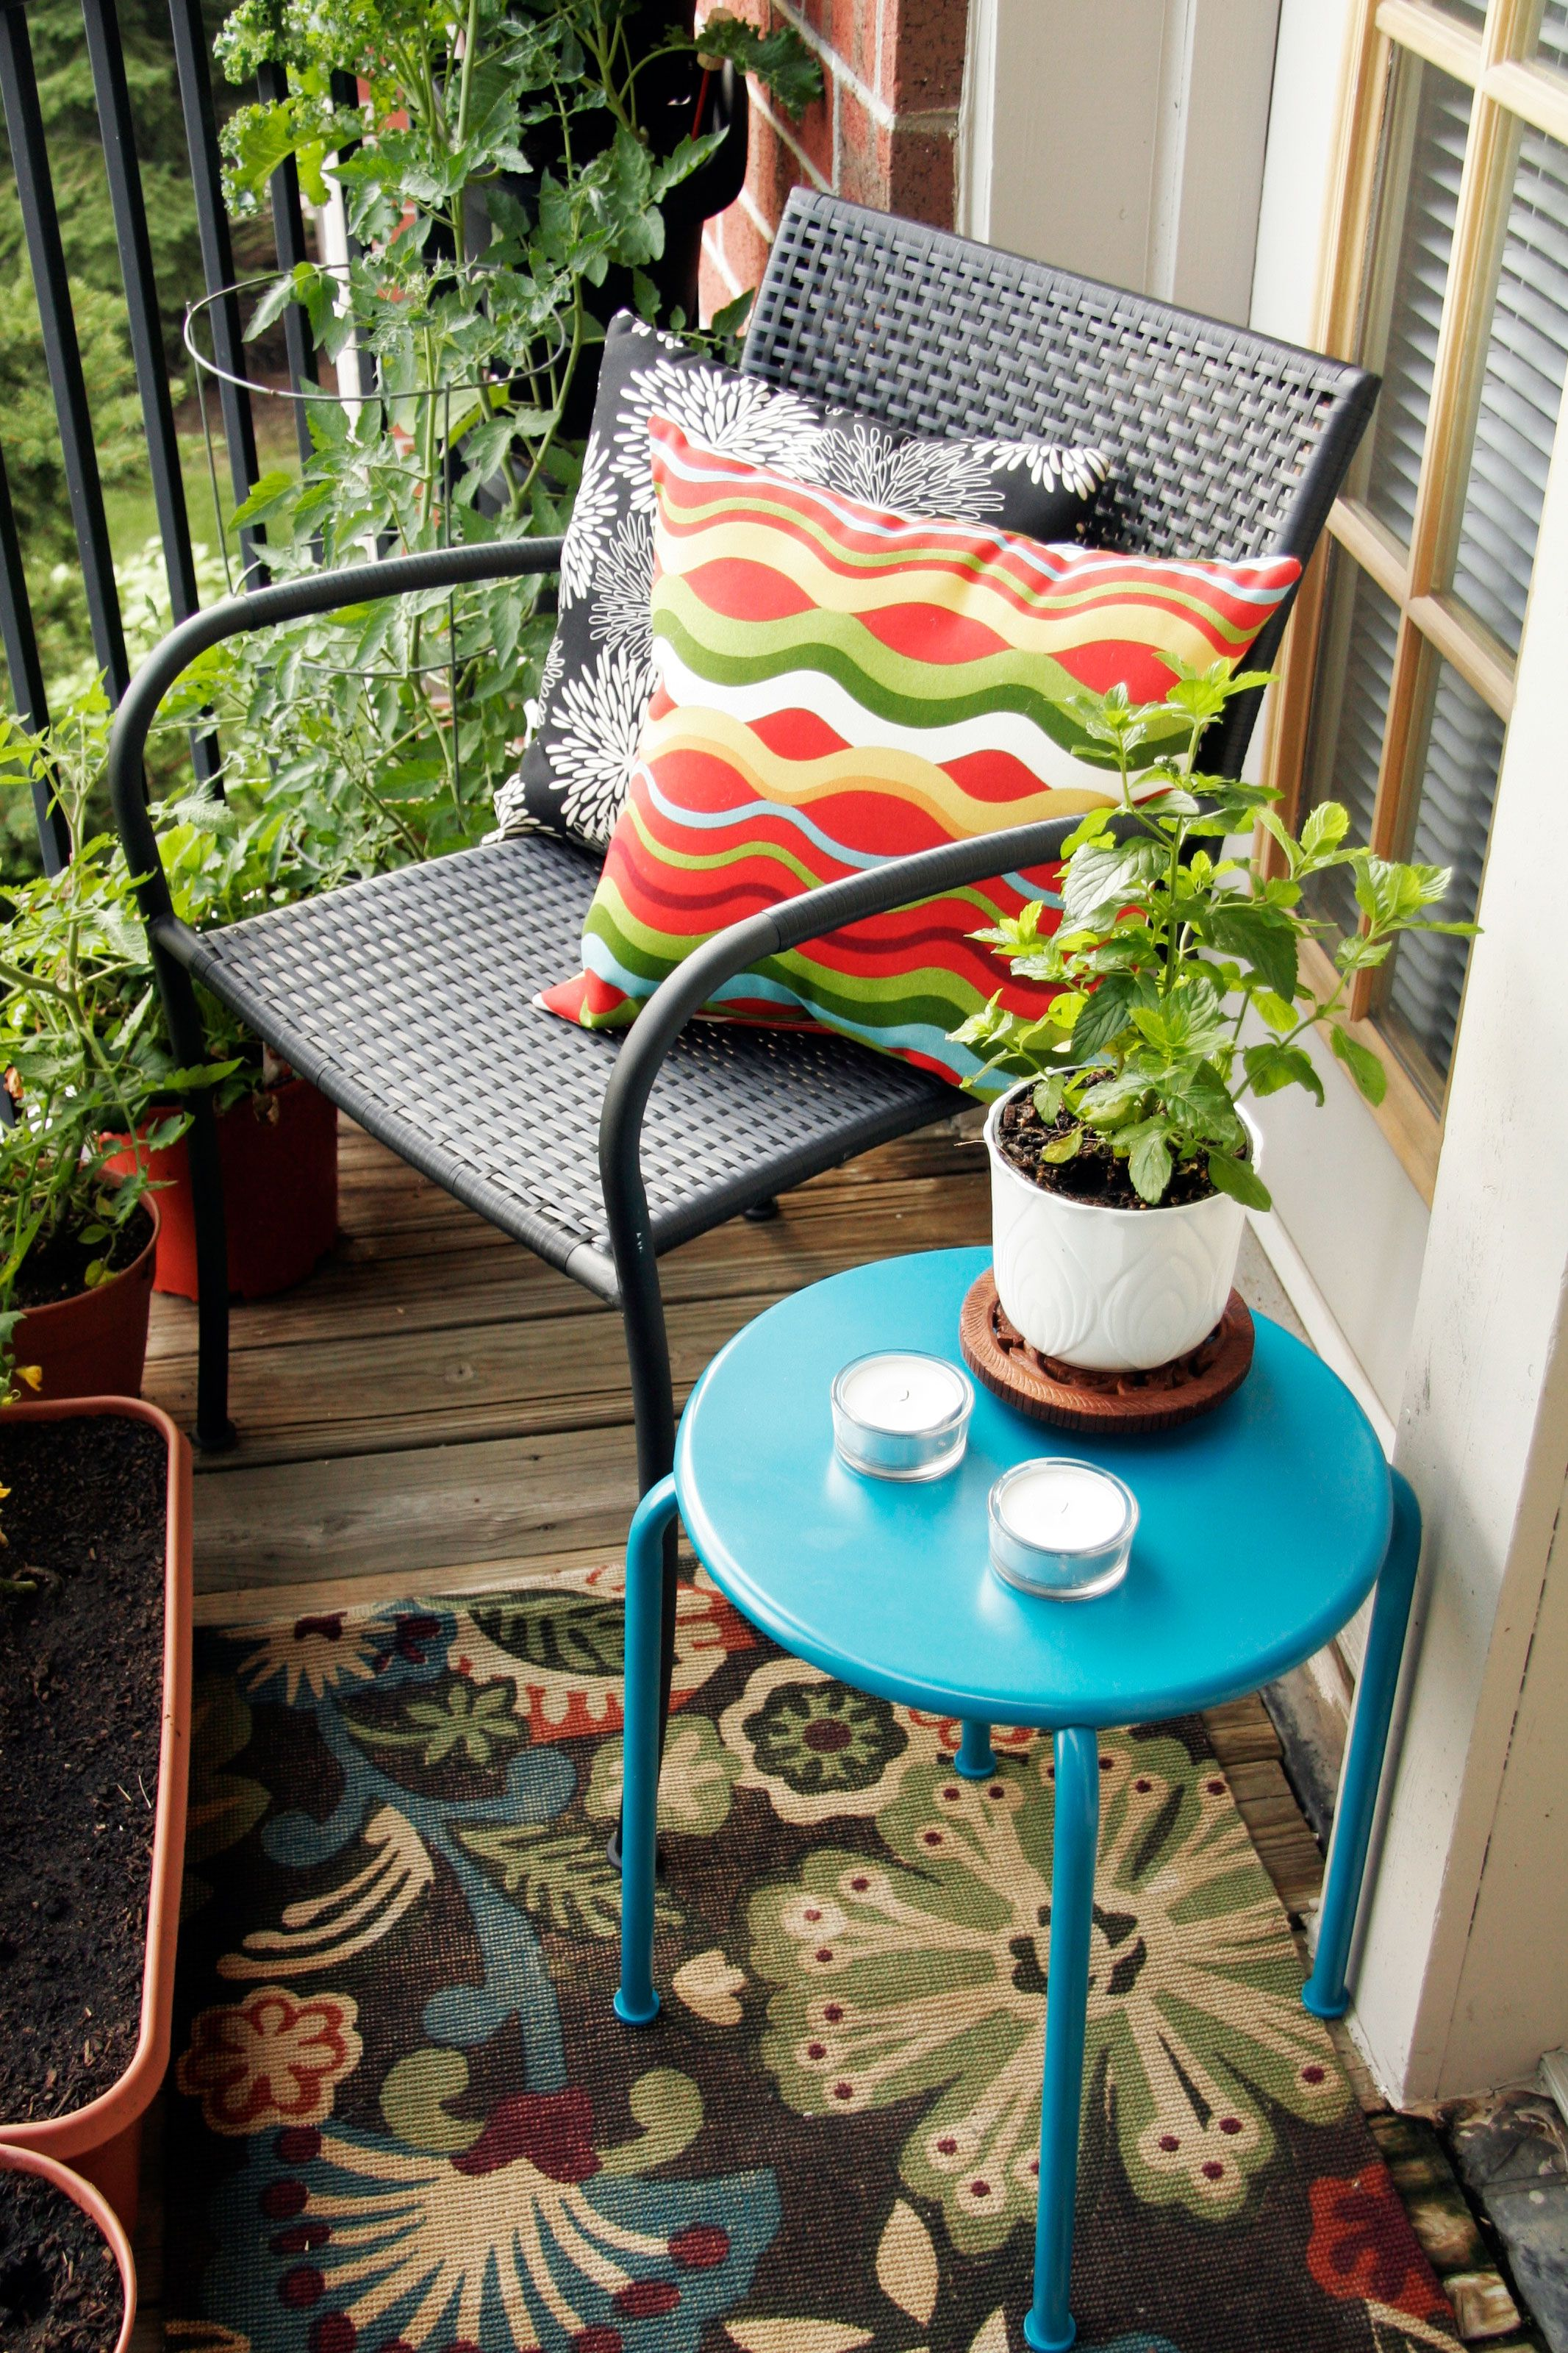 Balcony furniture small - 10 Brilliant Ideas For Decorating A Small Patio